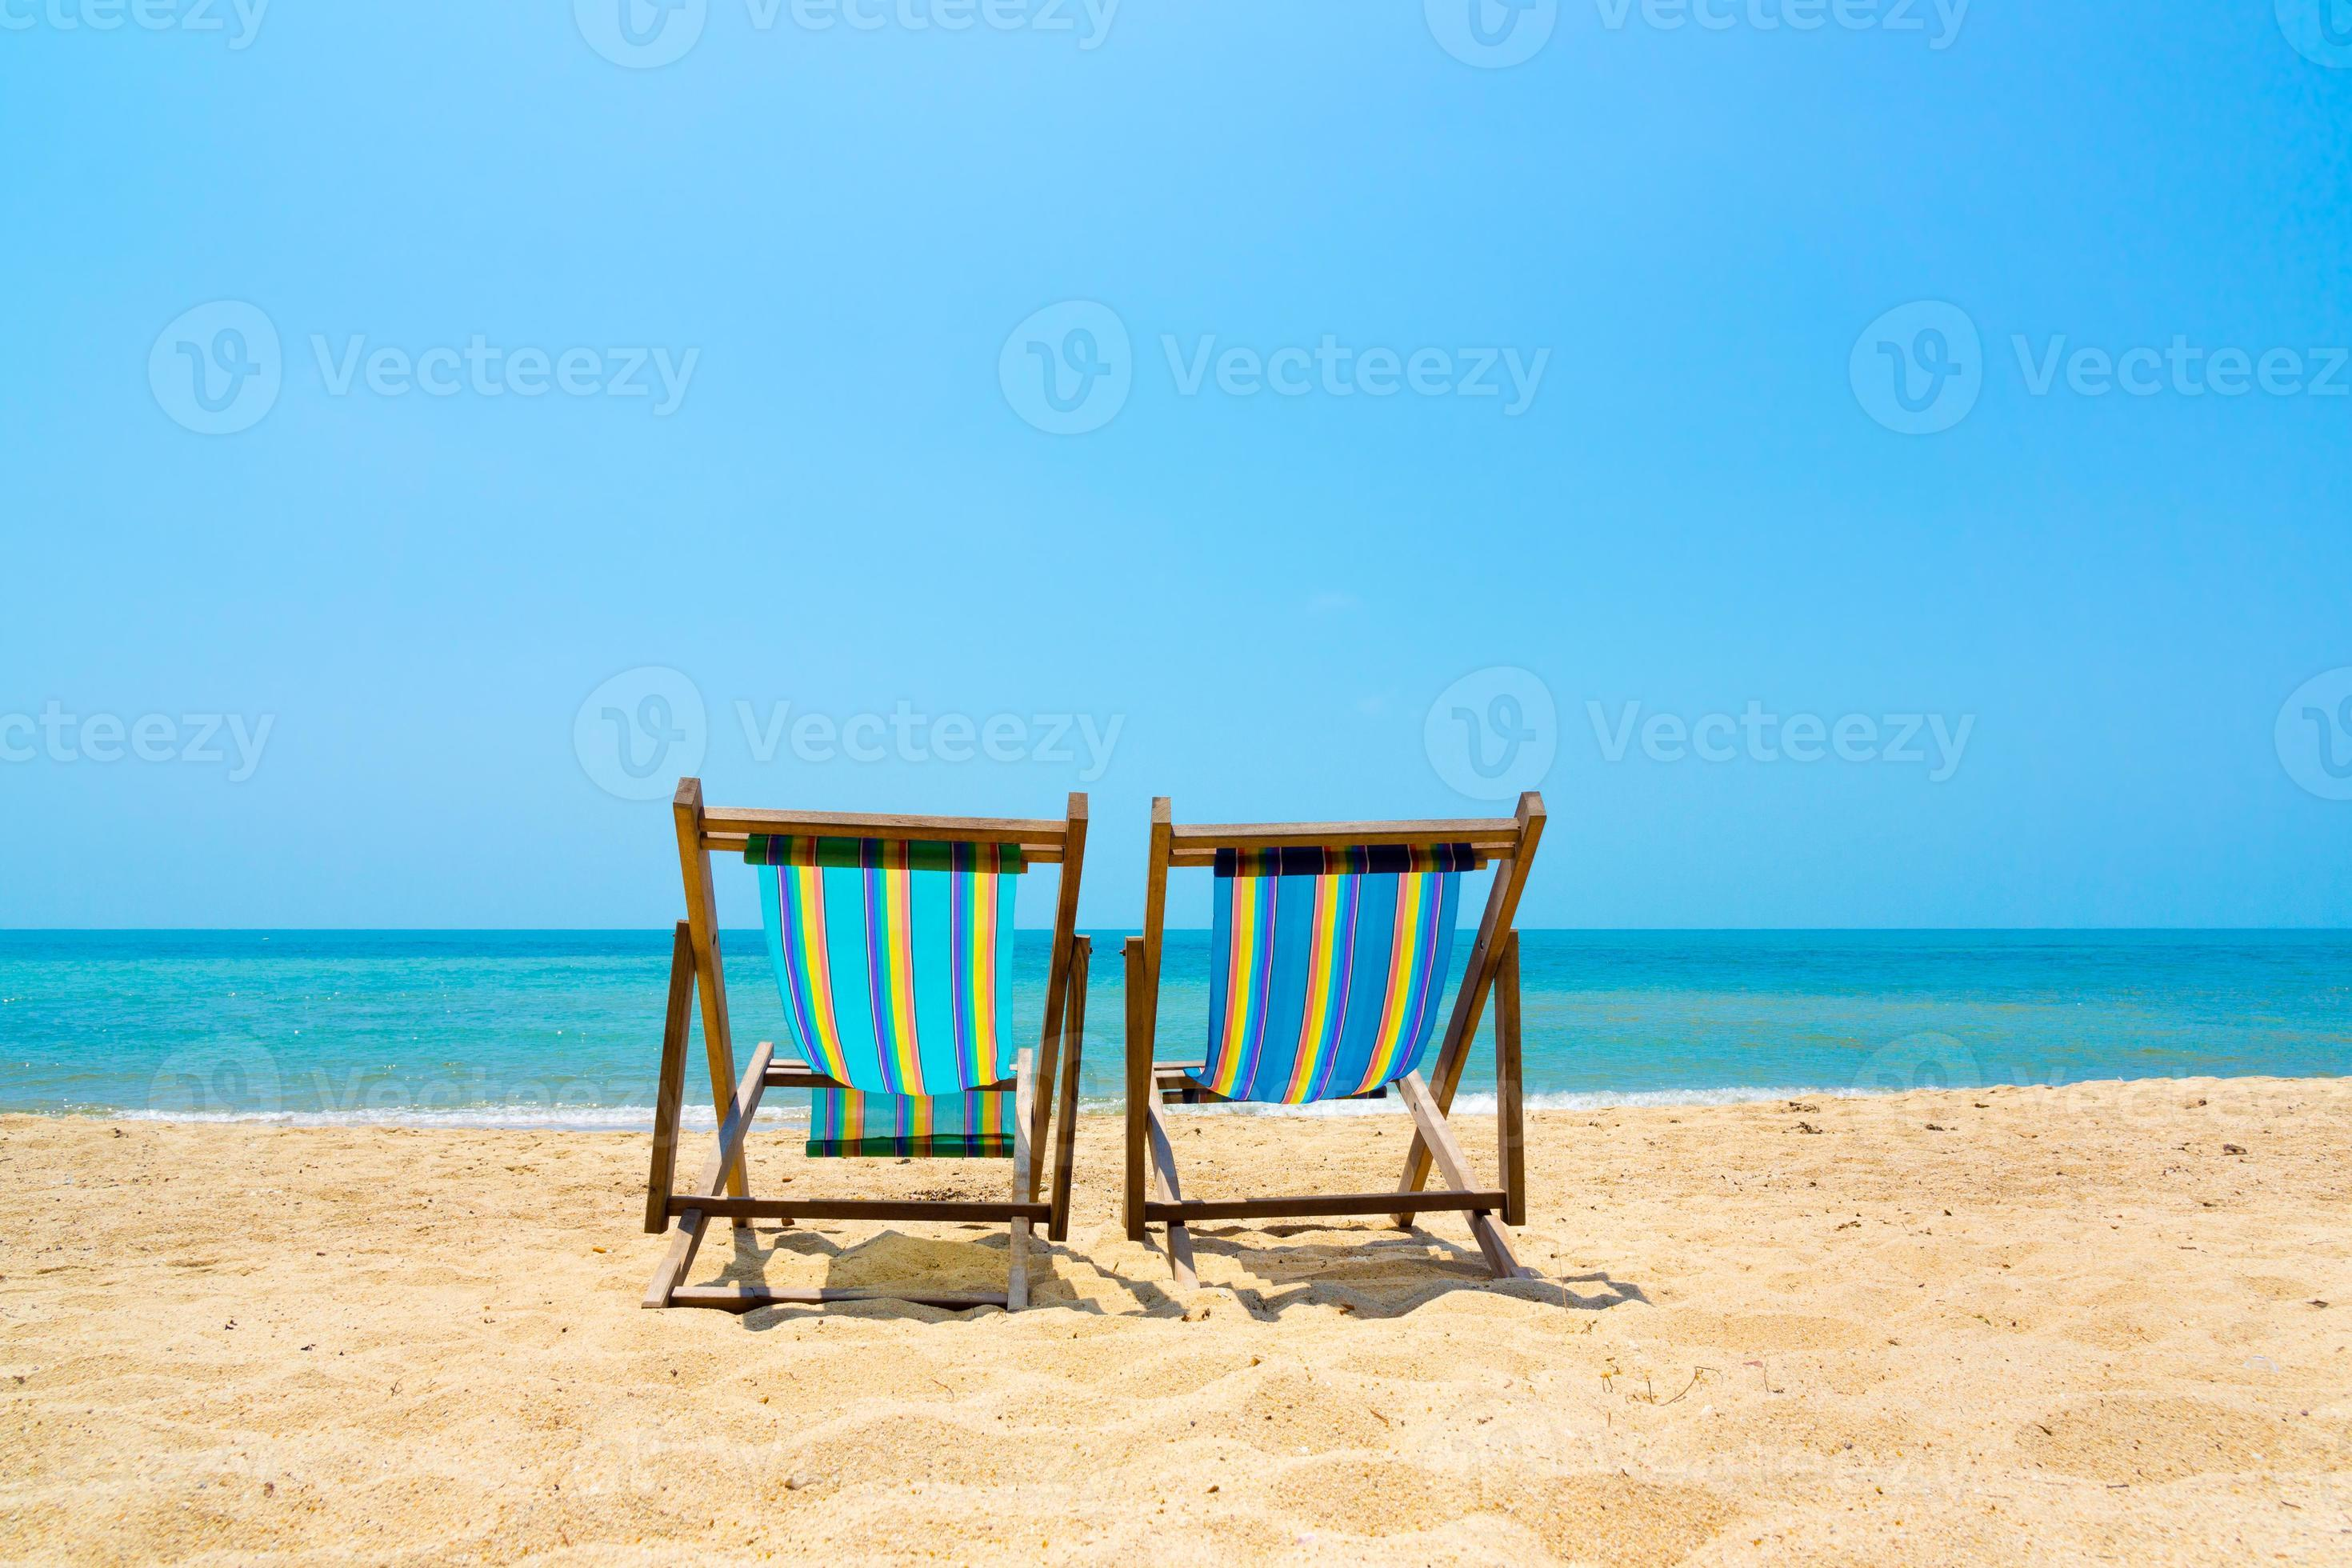 Two Lounge Chairs On The Beach 902343 Stock Photo At Vecteezy